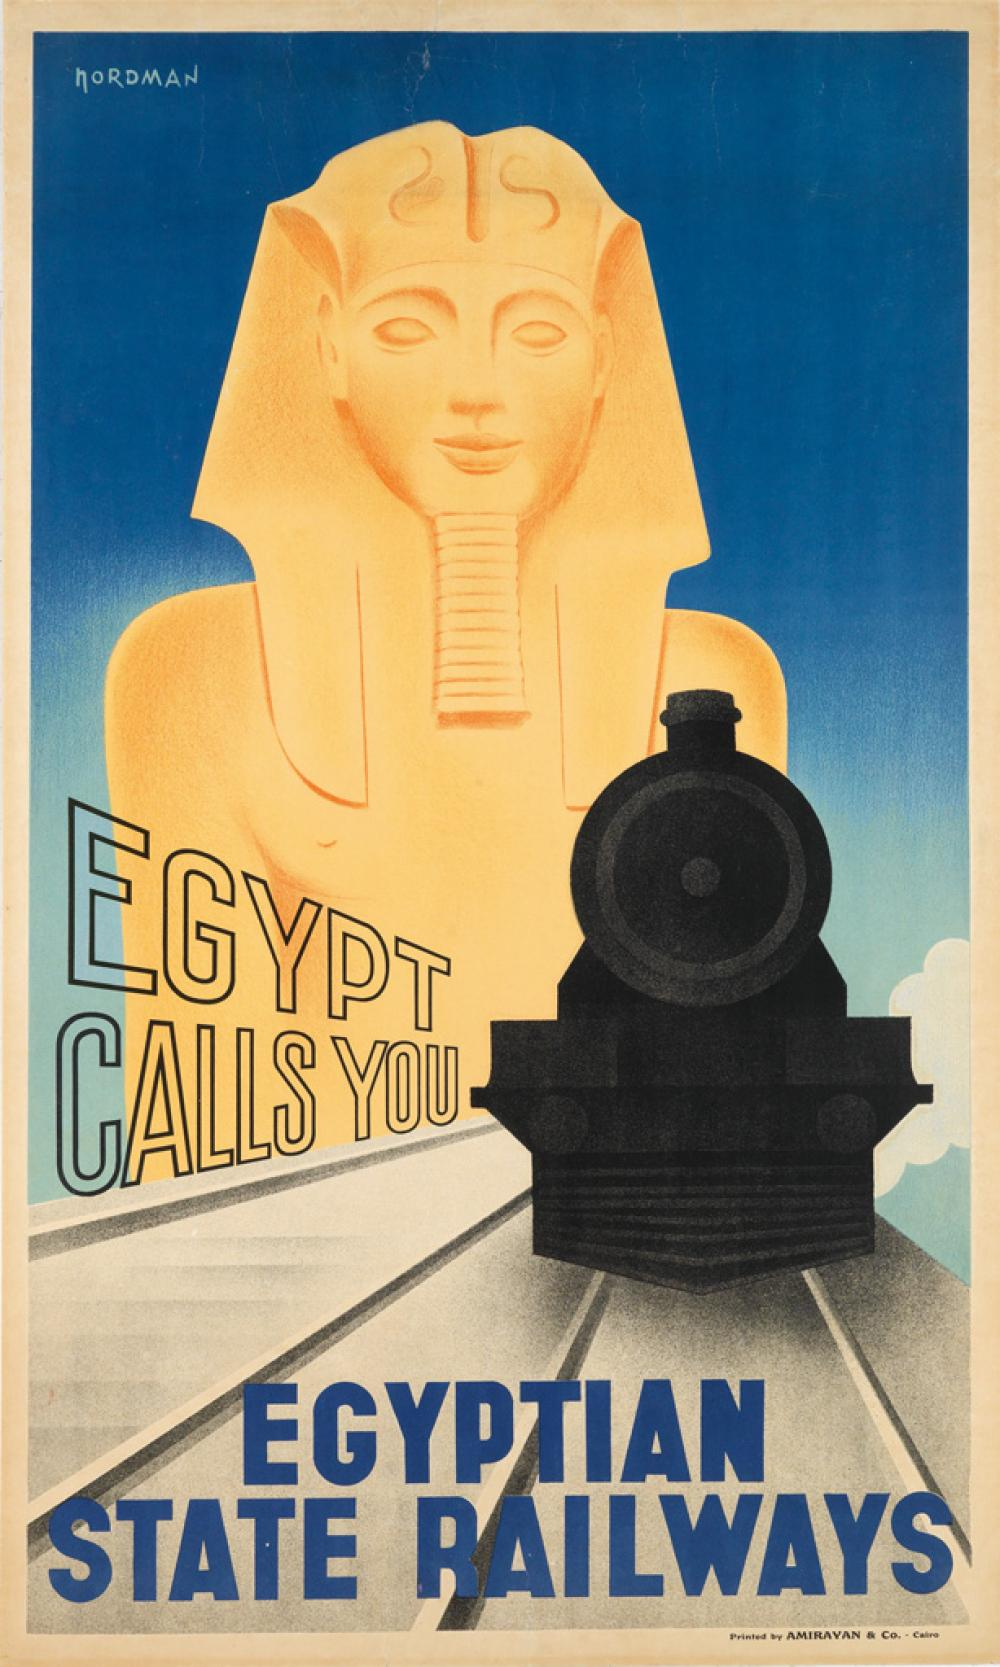 NORDMAN (DATES UNKNOWN). EGYPT CALLS YOU / EGYPTIAN STATE RAILWAYS. Circa 1930. 39x23 inches, 100x59 cm. Amirayan & Co., Cairo.